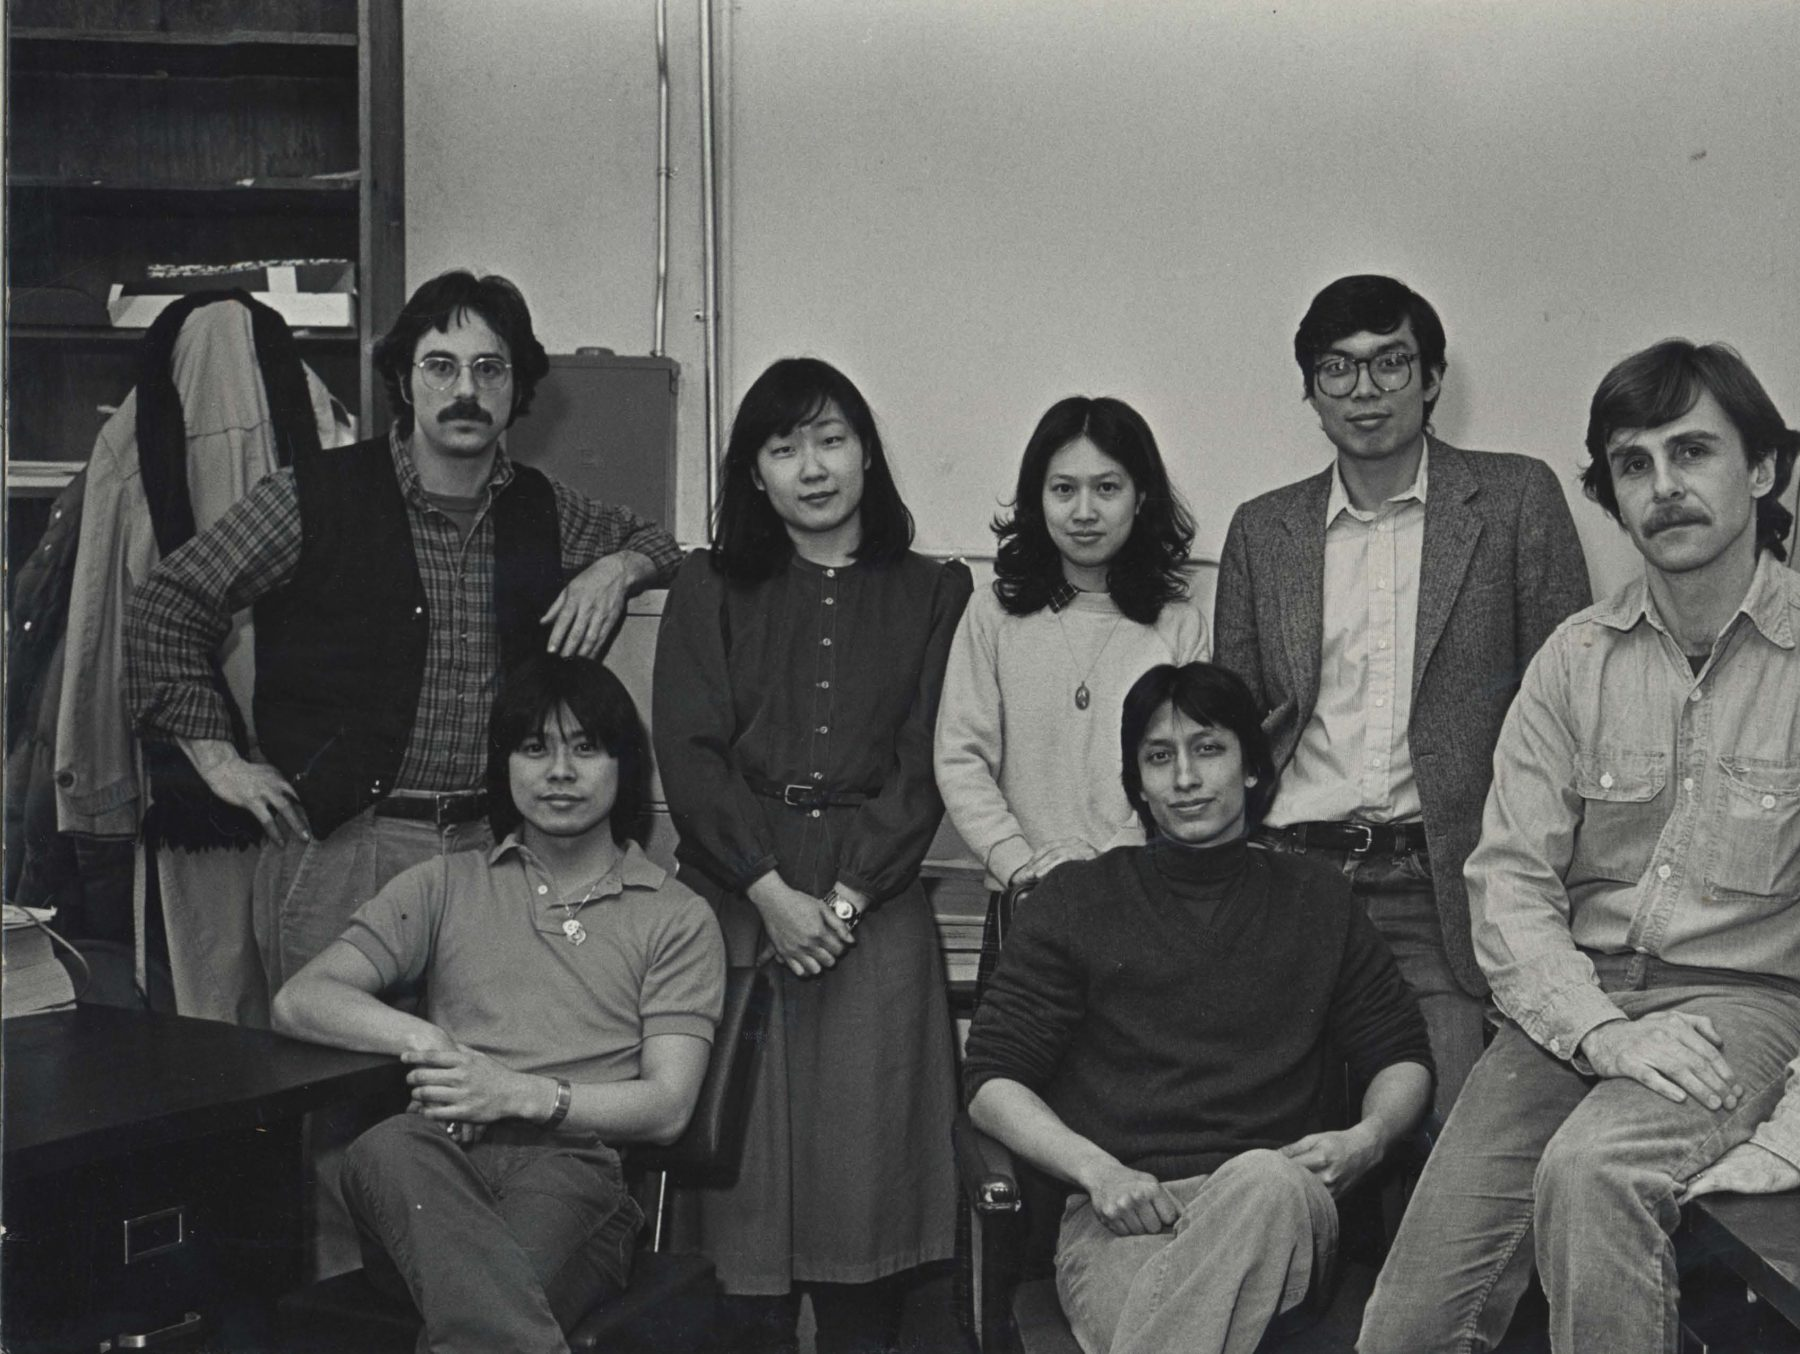 Earliest staff group photo, Pail Calhoun, Charles Lai黎重旺, Couldn't recognize, Yuet-fung Ho何月凤, James Dao陶启华, John Kuo Wei Tchen陈国维, Robert Glick, 1980-1984